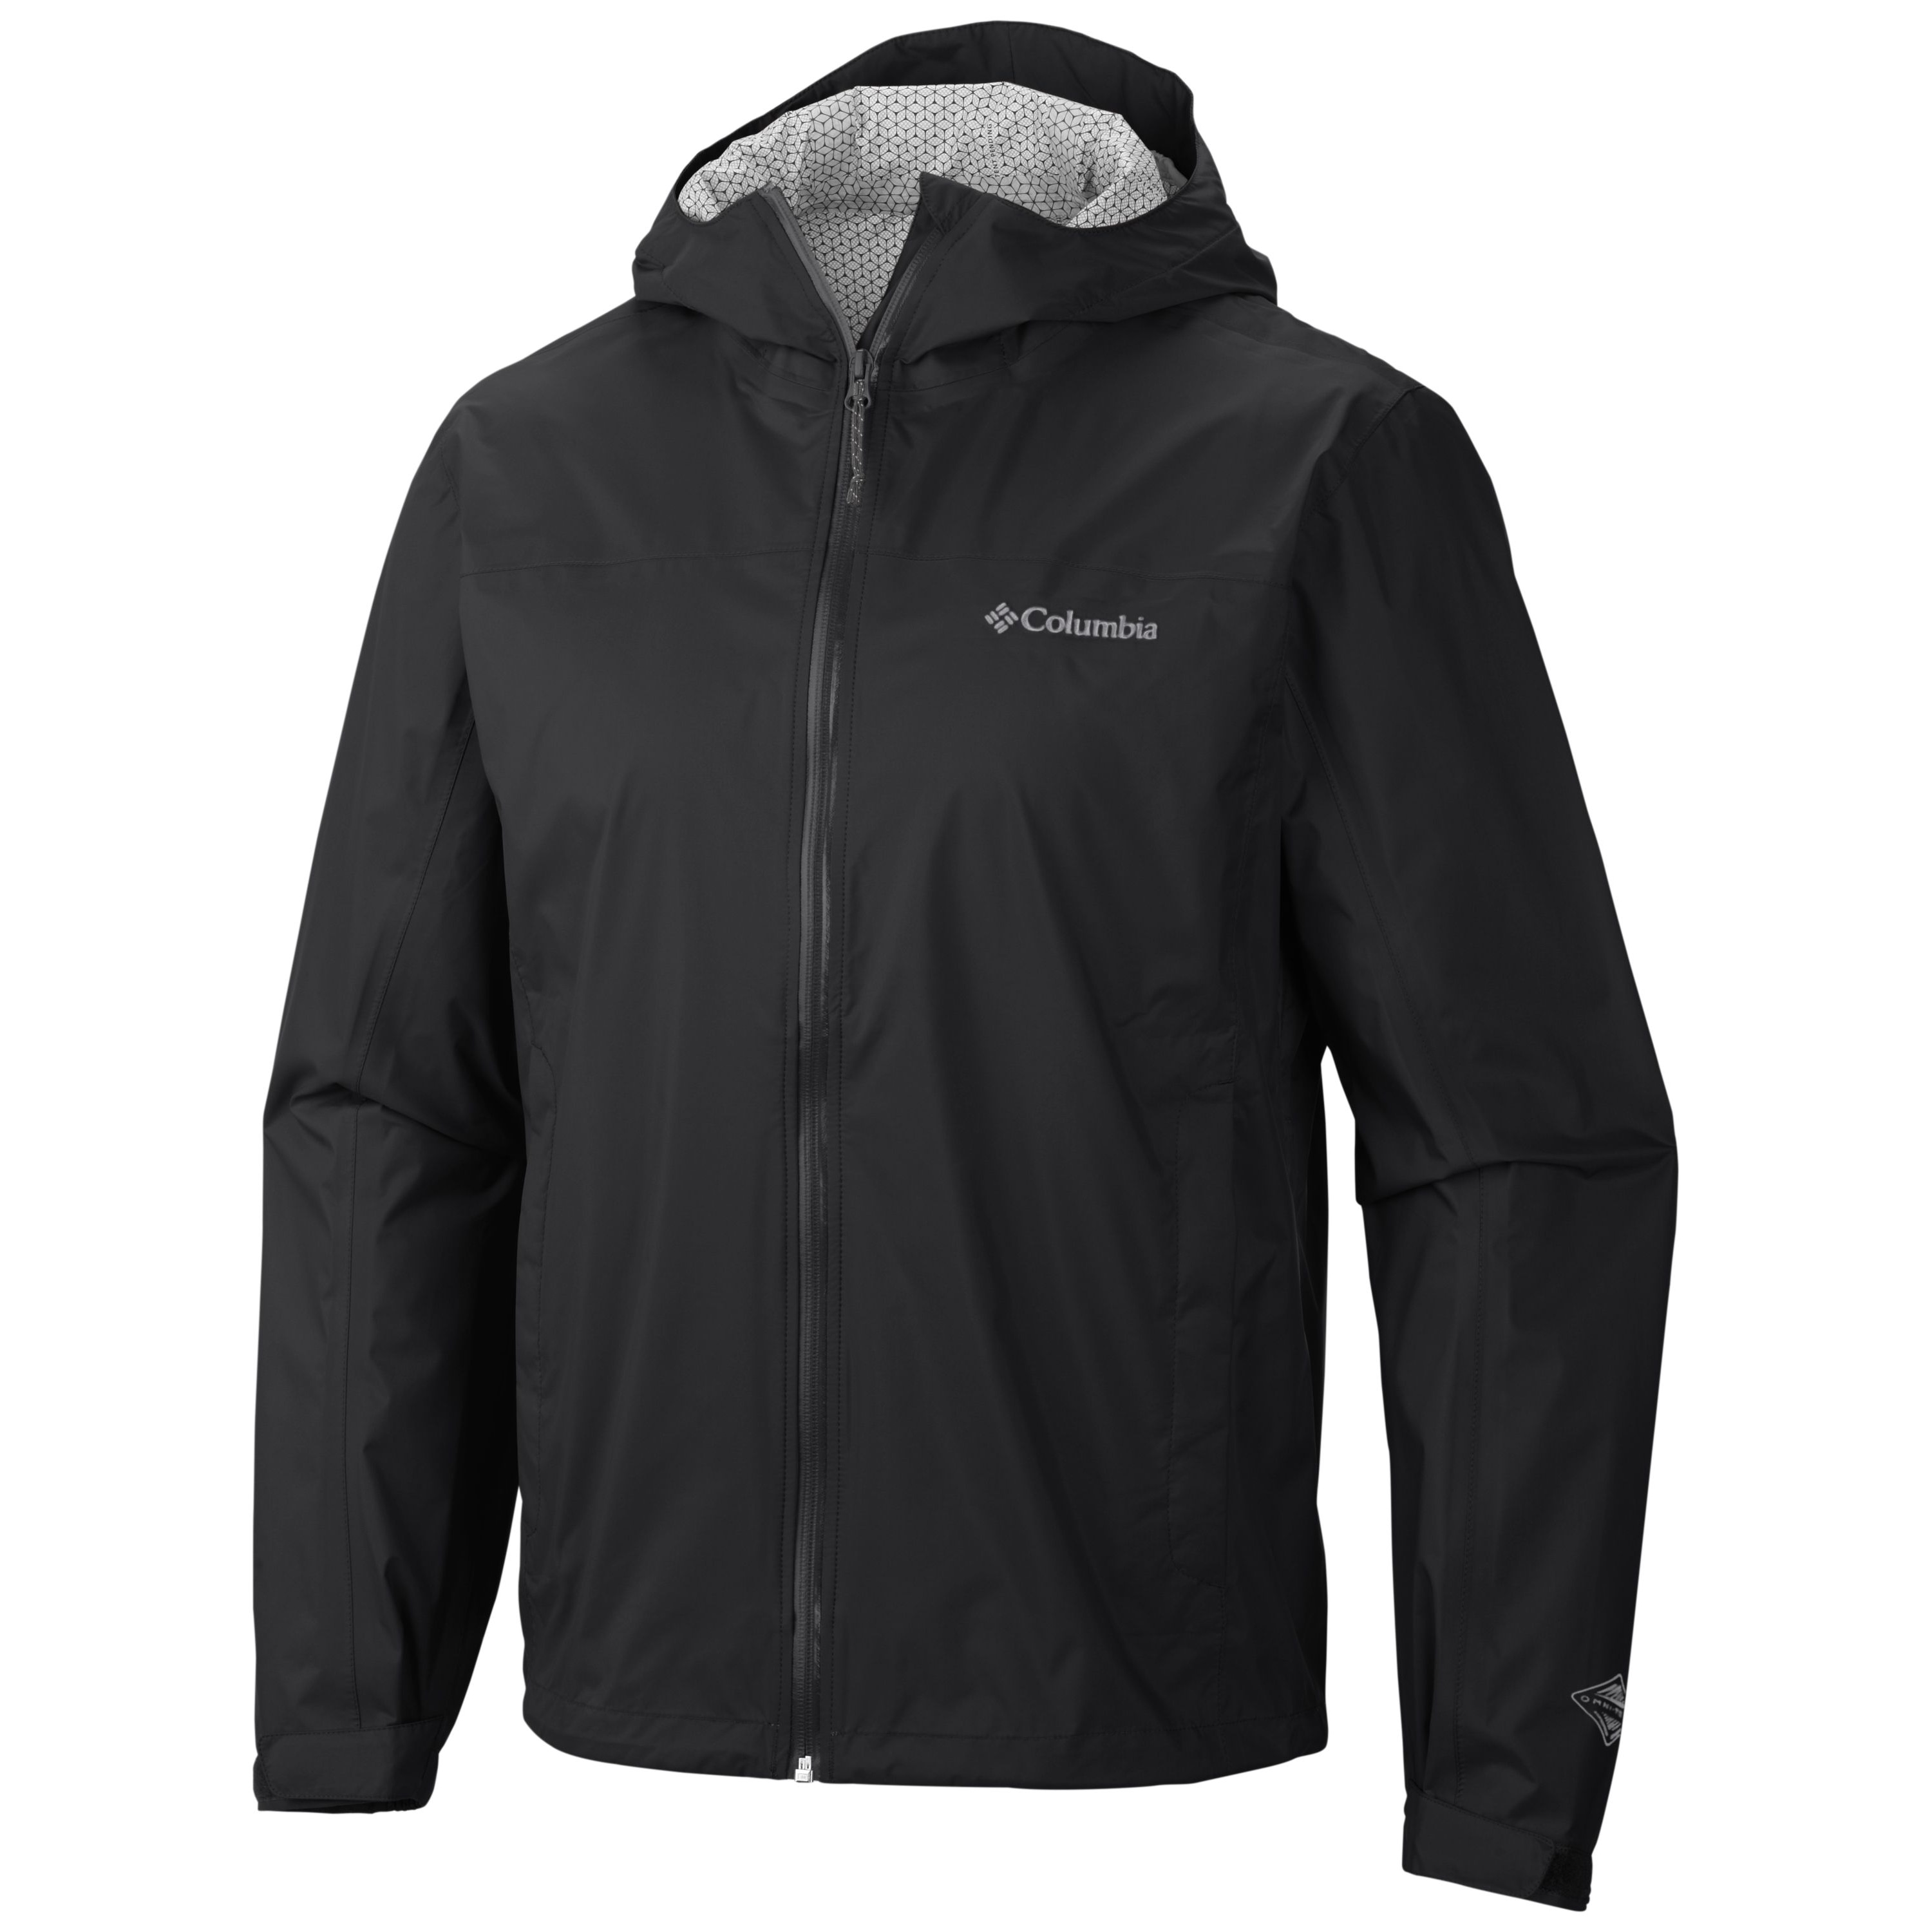 EvaPOURation Jacket - Men's